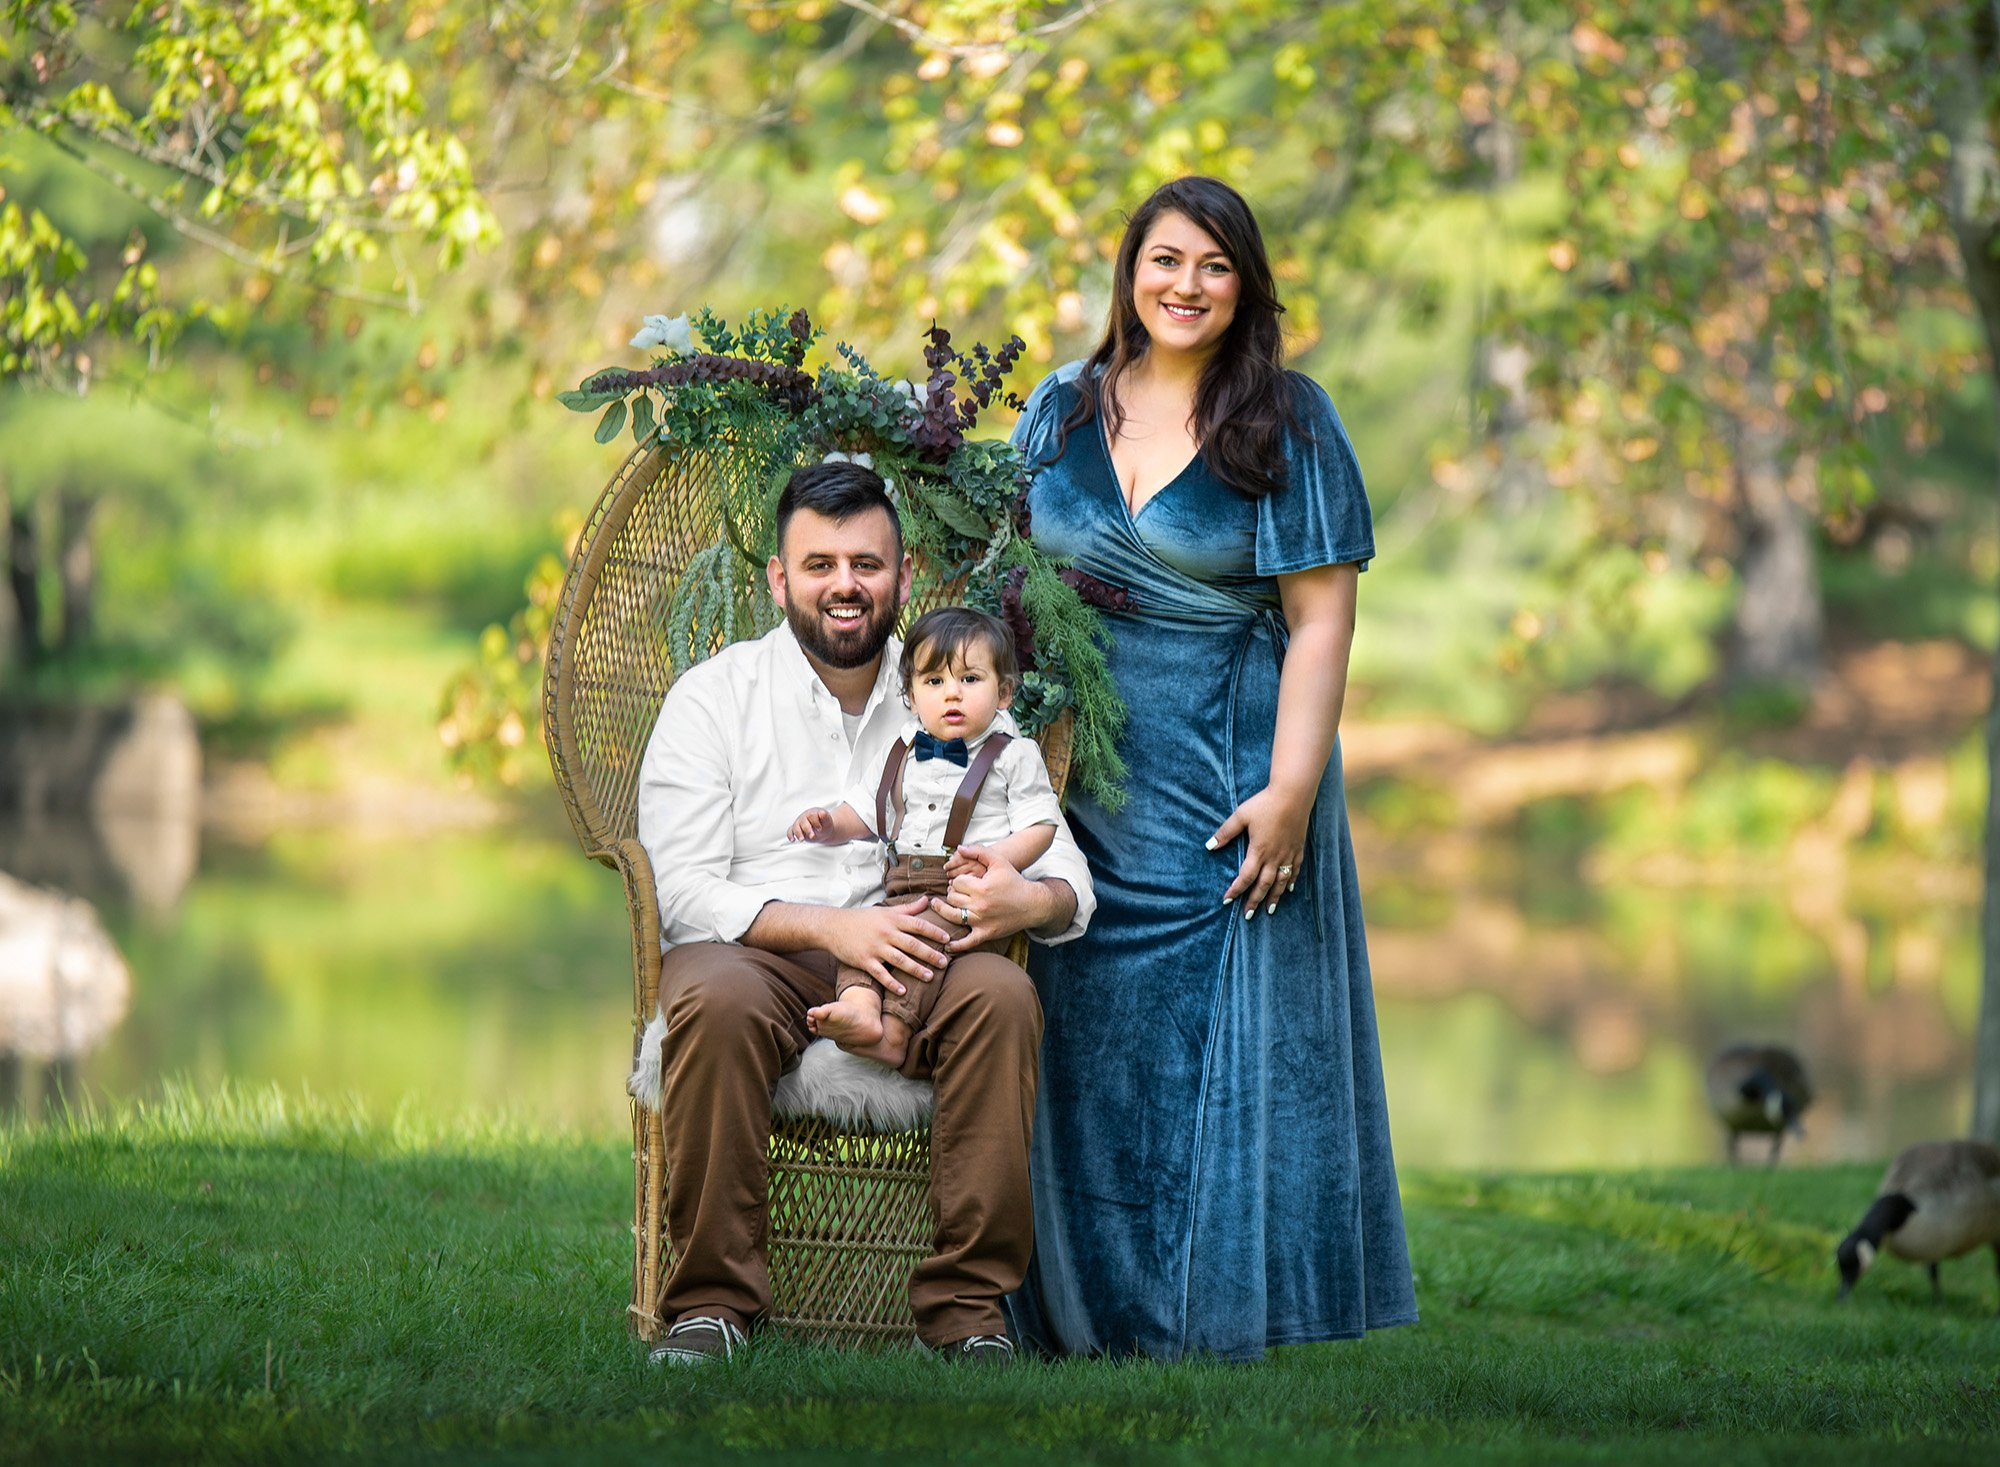 dad holding one year old boy sitting in his lap while sitting on a wicker chair in nature dressed up in greenery next to his wife